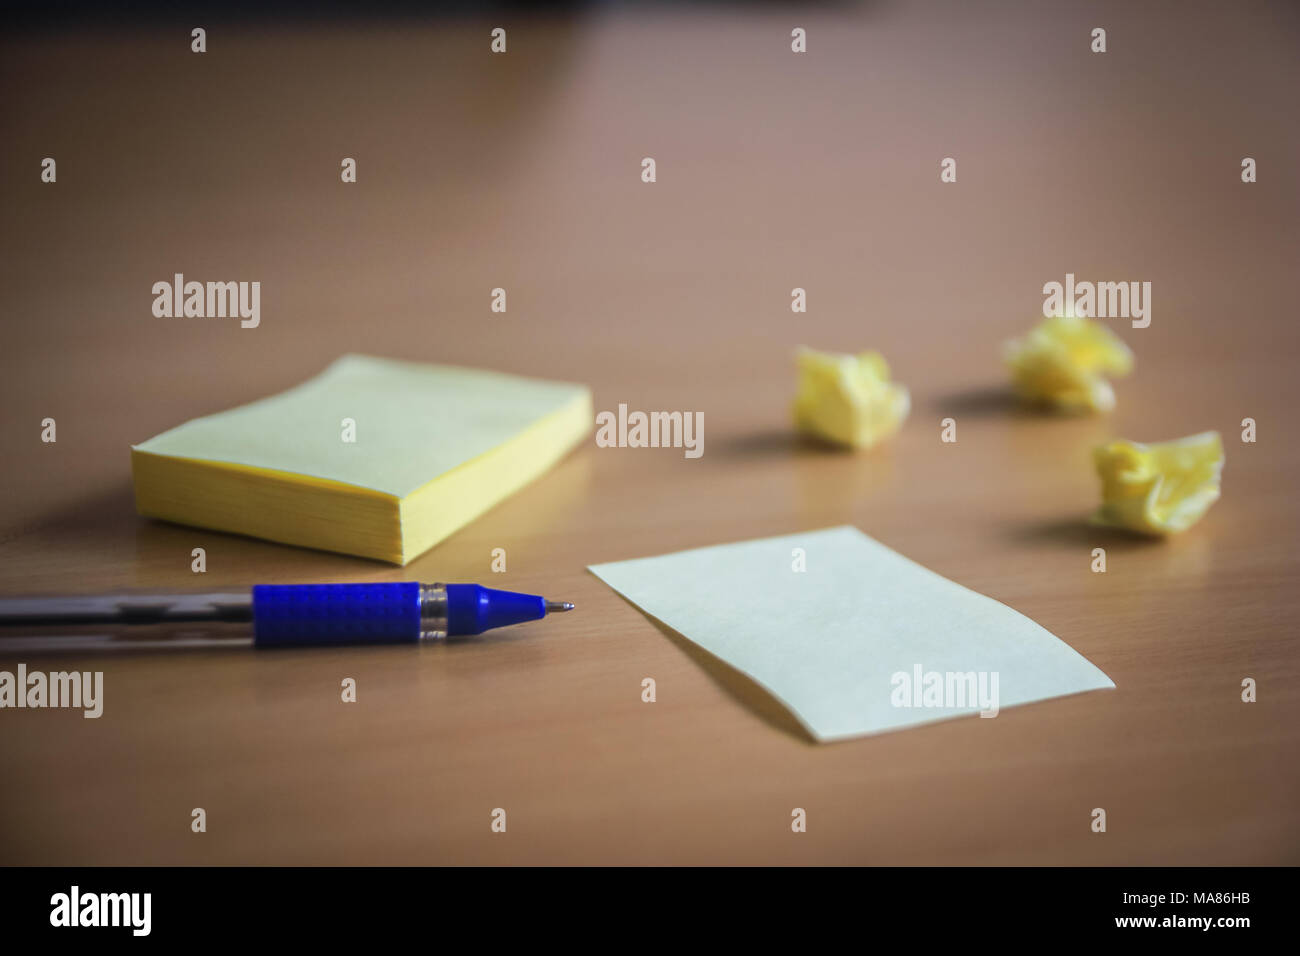 collection of pins and note paper bunch and loose papers on wooden board. ball point pen. side view ready to fill your text and design quotes. - Stock Image